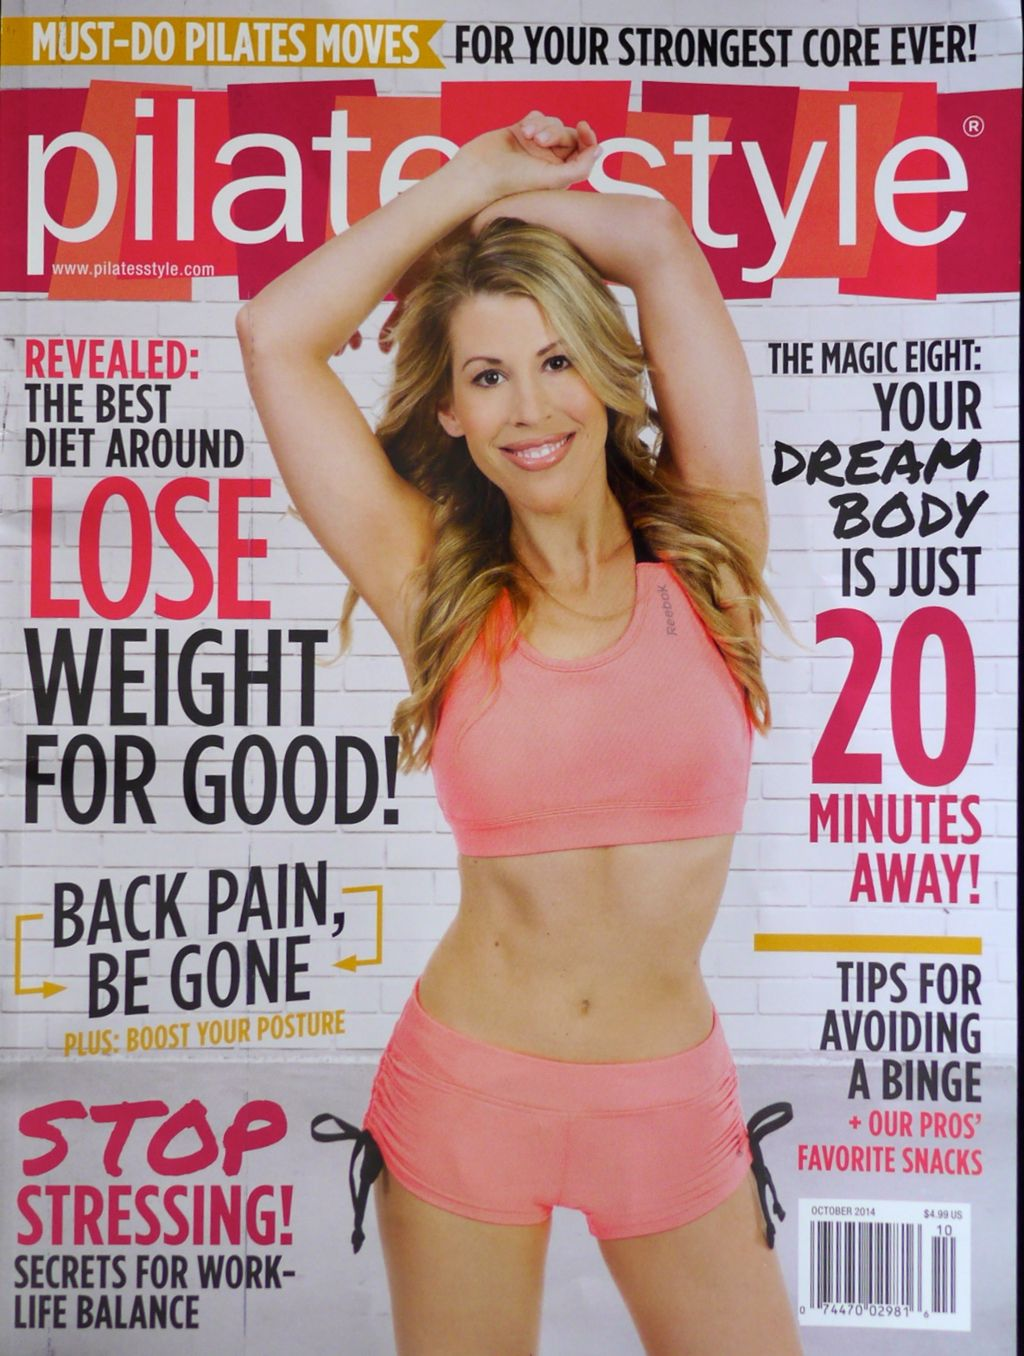 Andrea Speir on the cover of Sept/Oct issue of Pilates Style Magazine